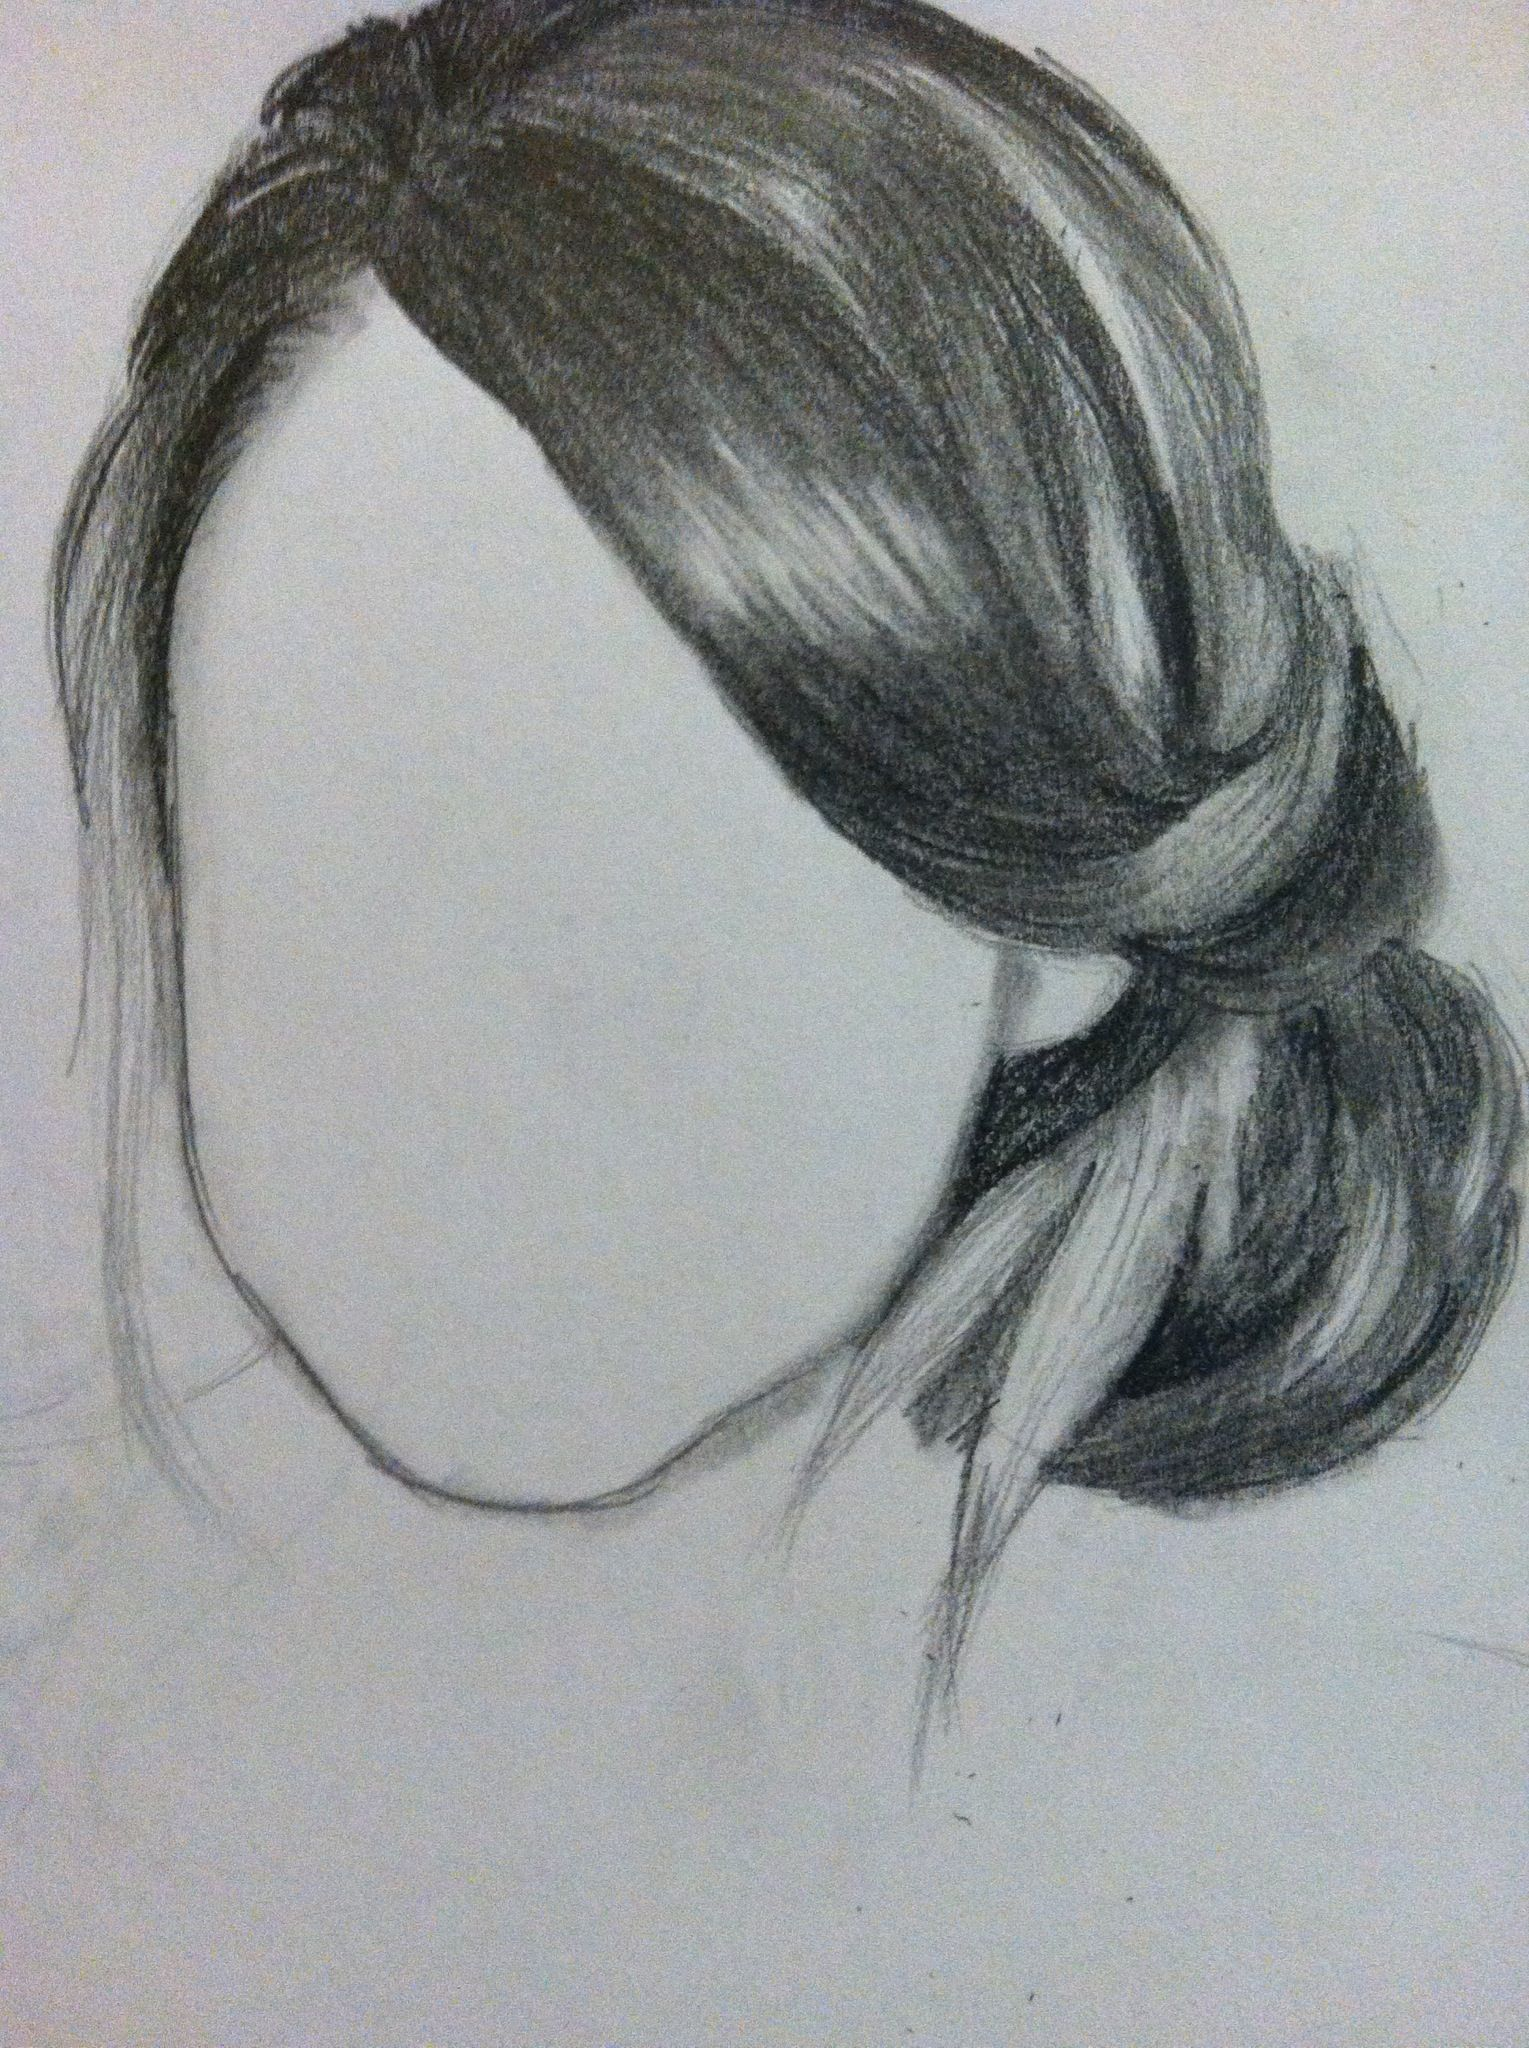 How to draw hair drawing drawings how to draw hair pencil drawings